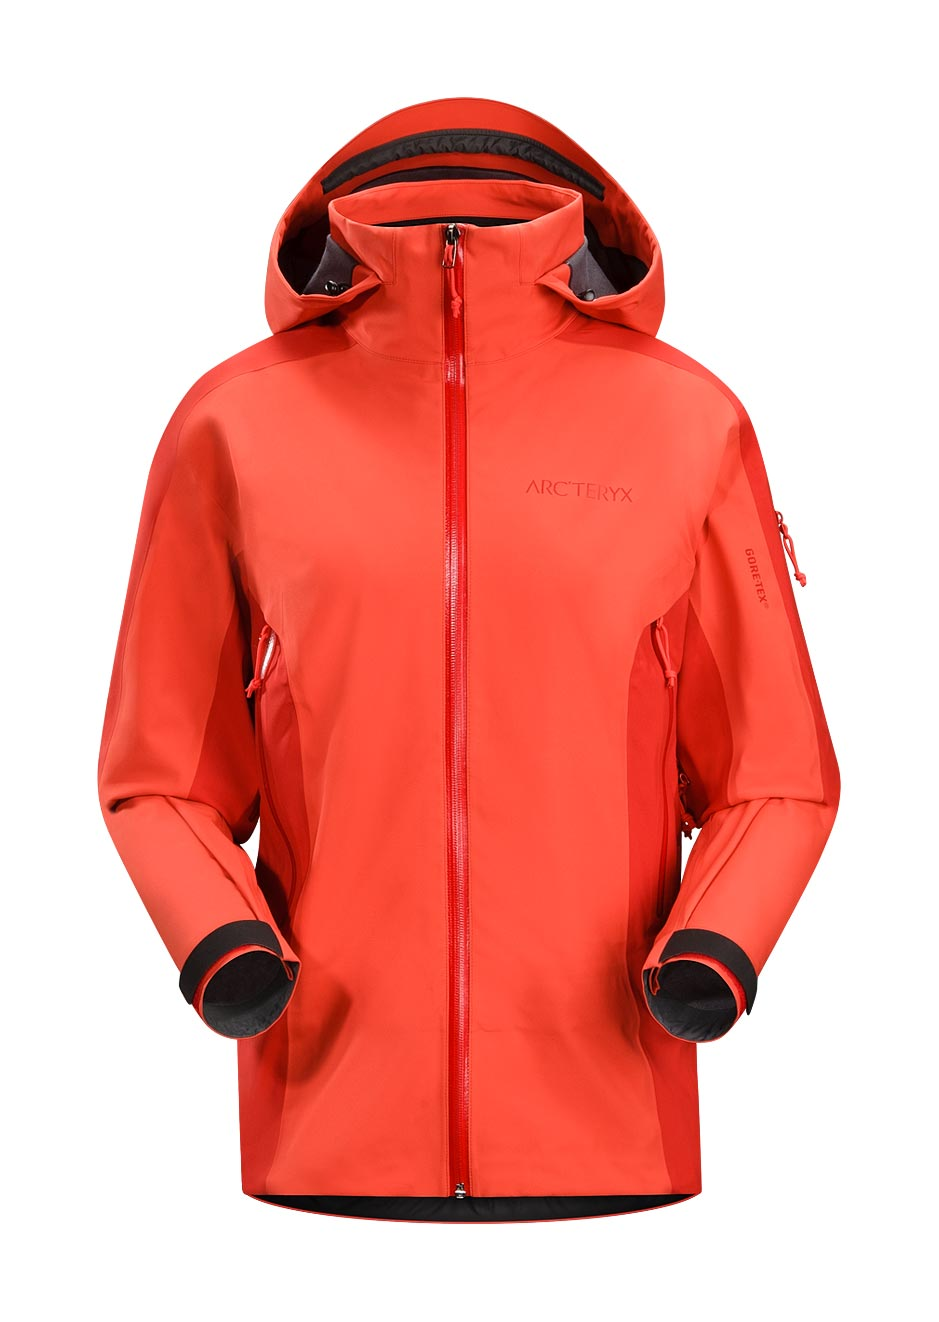 Arcteryx Jackets Women Lantern Stingray Jacket